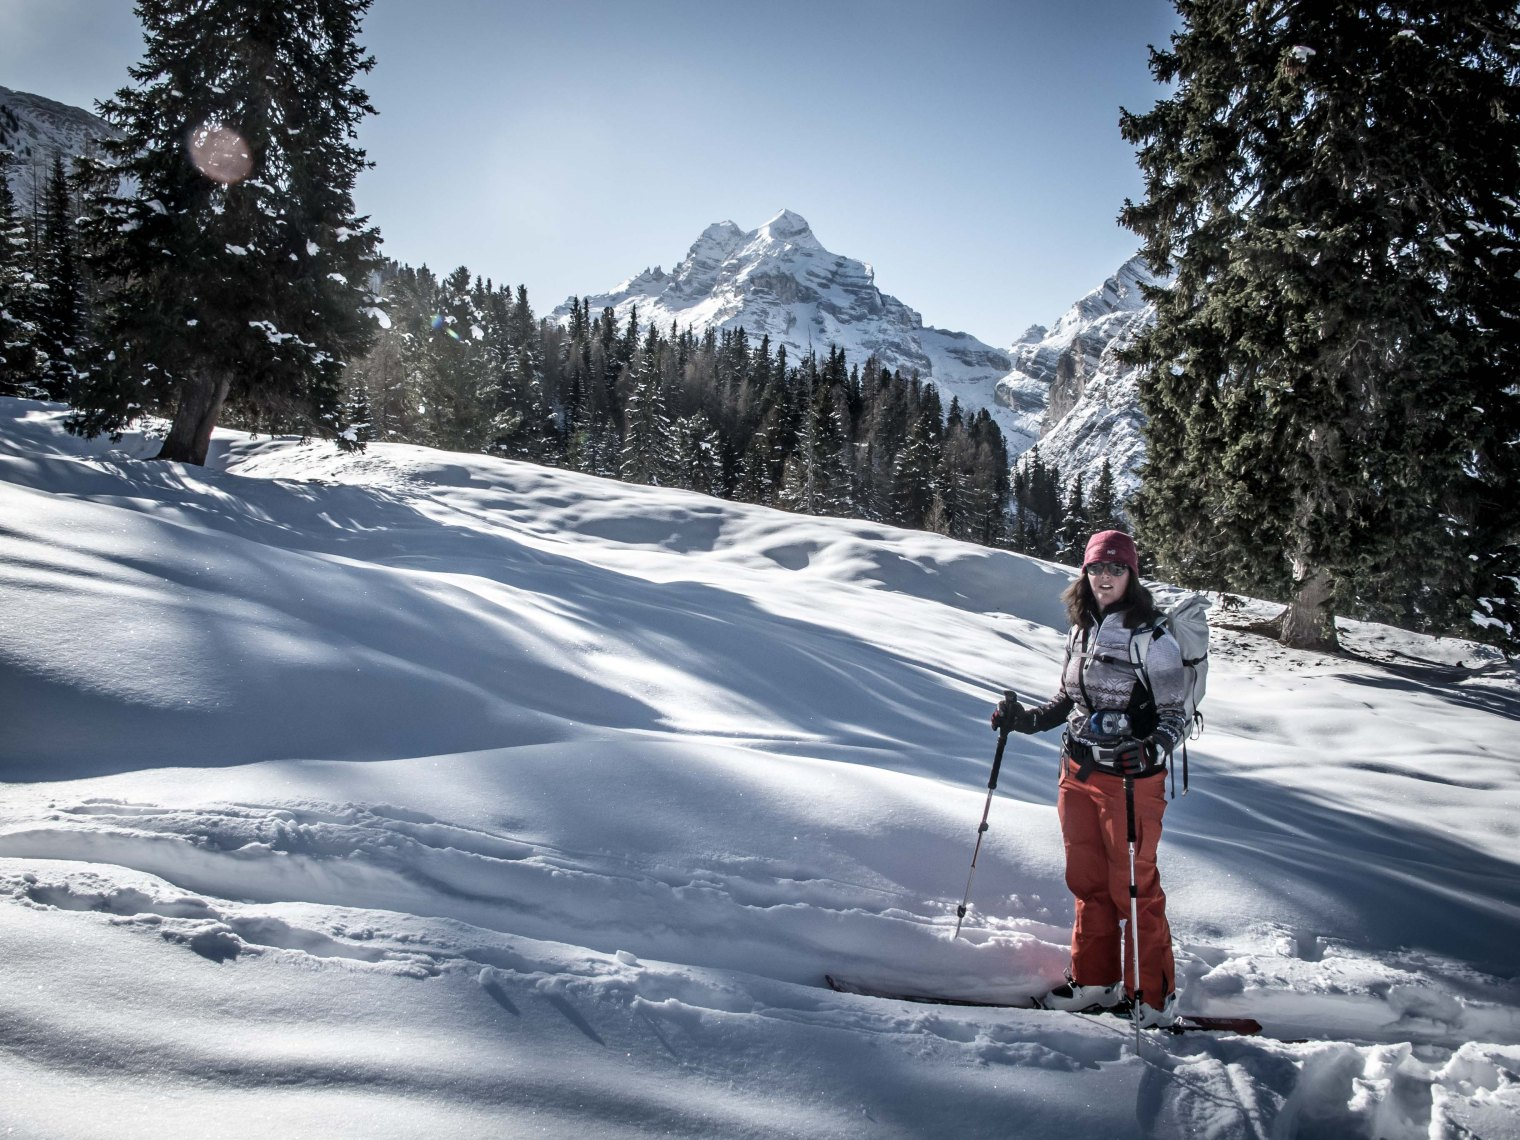 Ski-touring in the woods towards Lerosa with Tofana in the background.